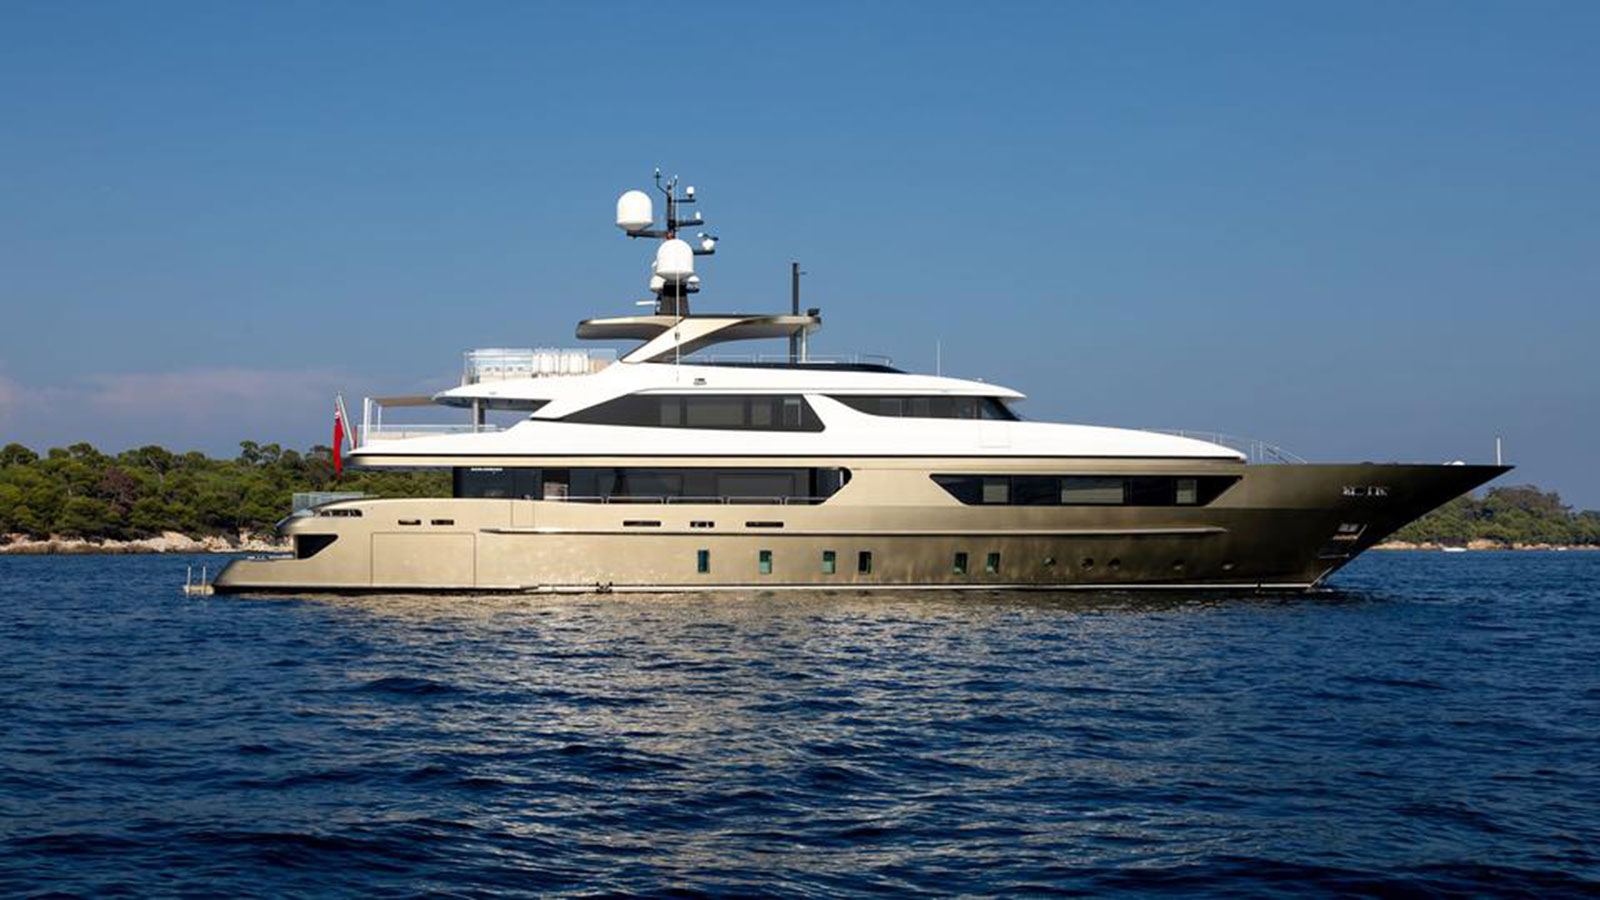 Trident - yacht sold